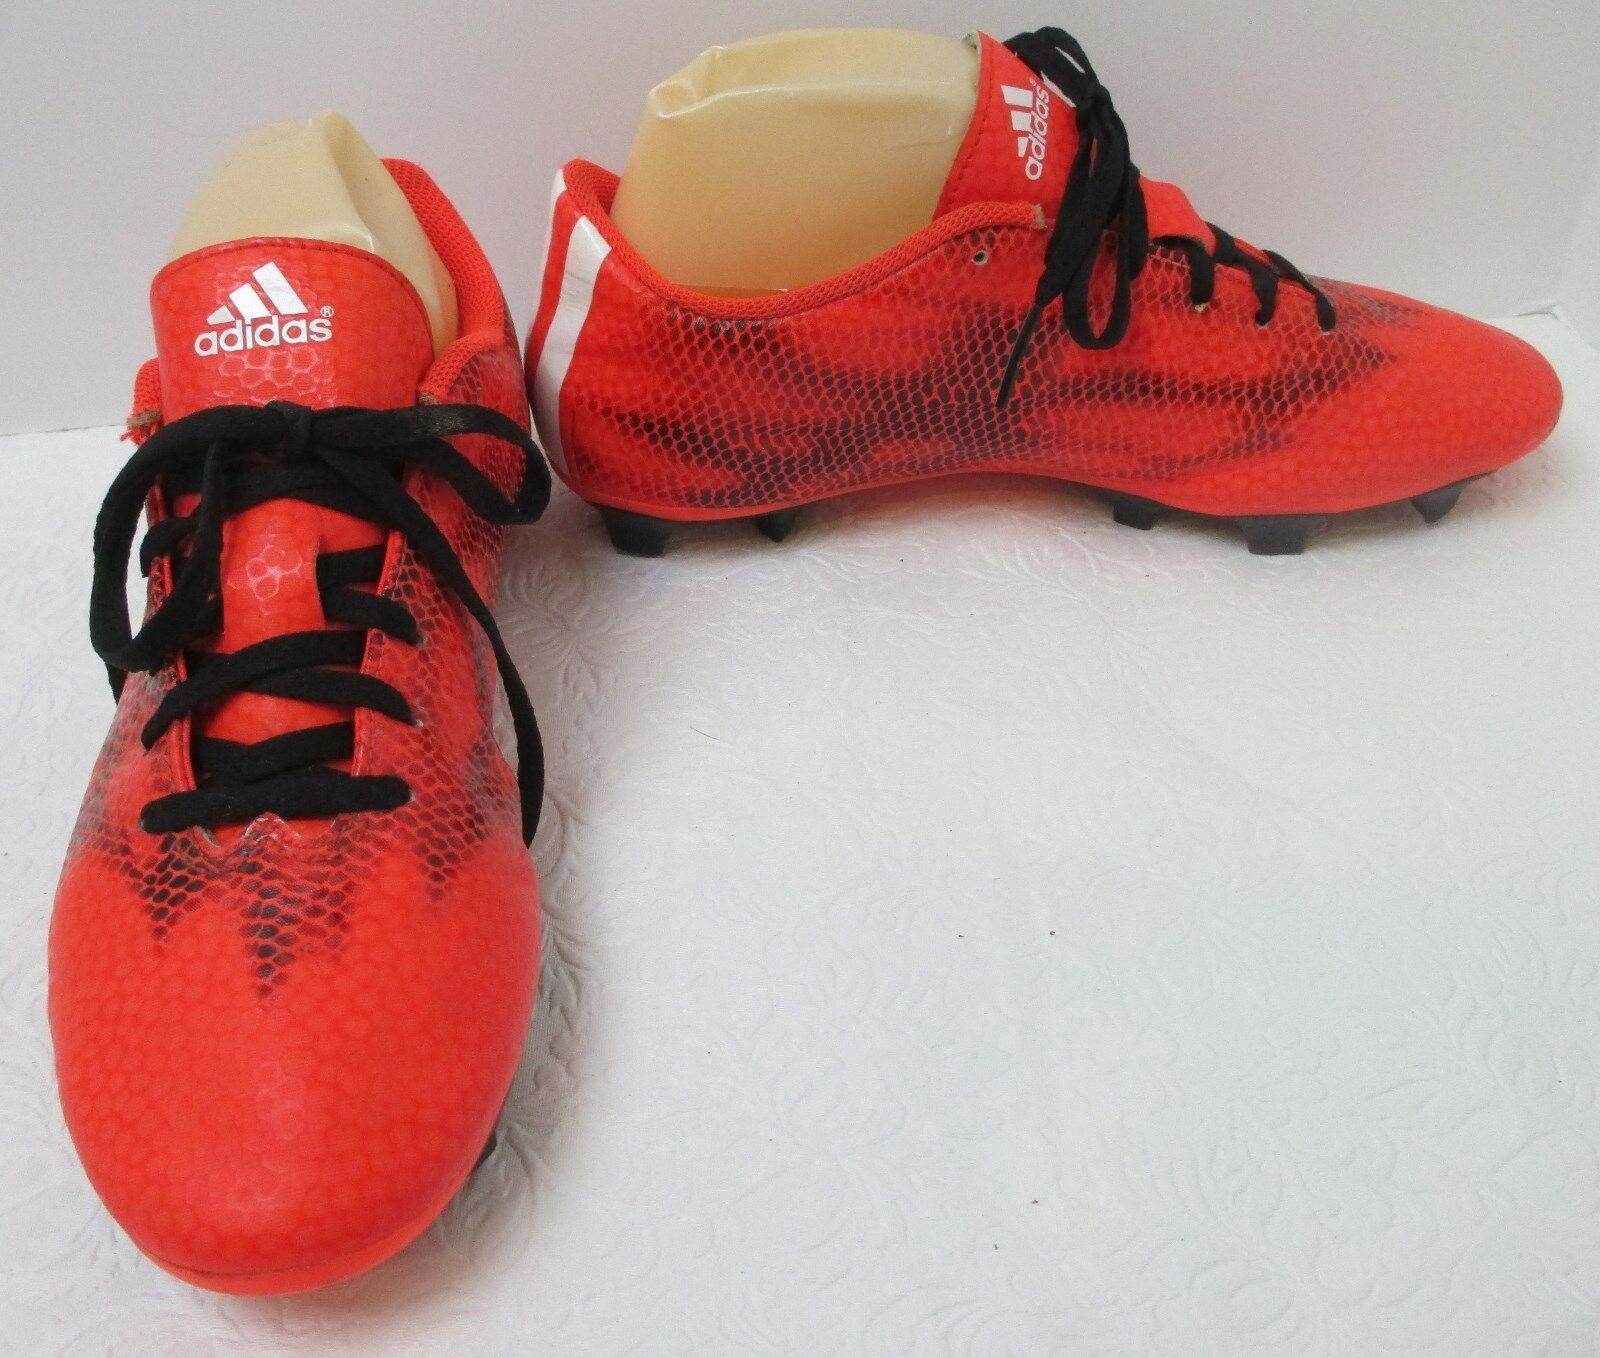 Men's Adidas F5 FG Solar Red/Ghost Black Soccer Cleats B34862 Sz 8 M best-selling model of the brand